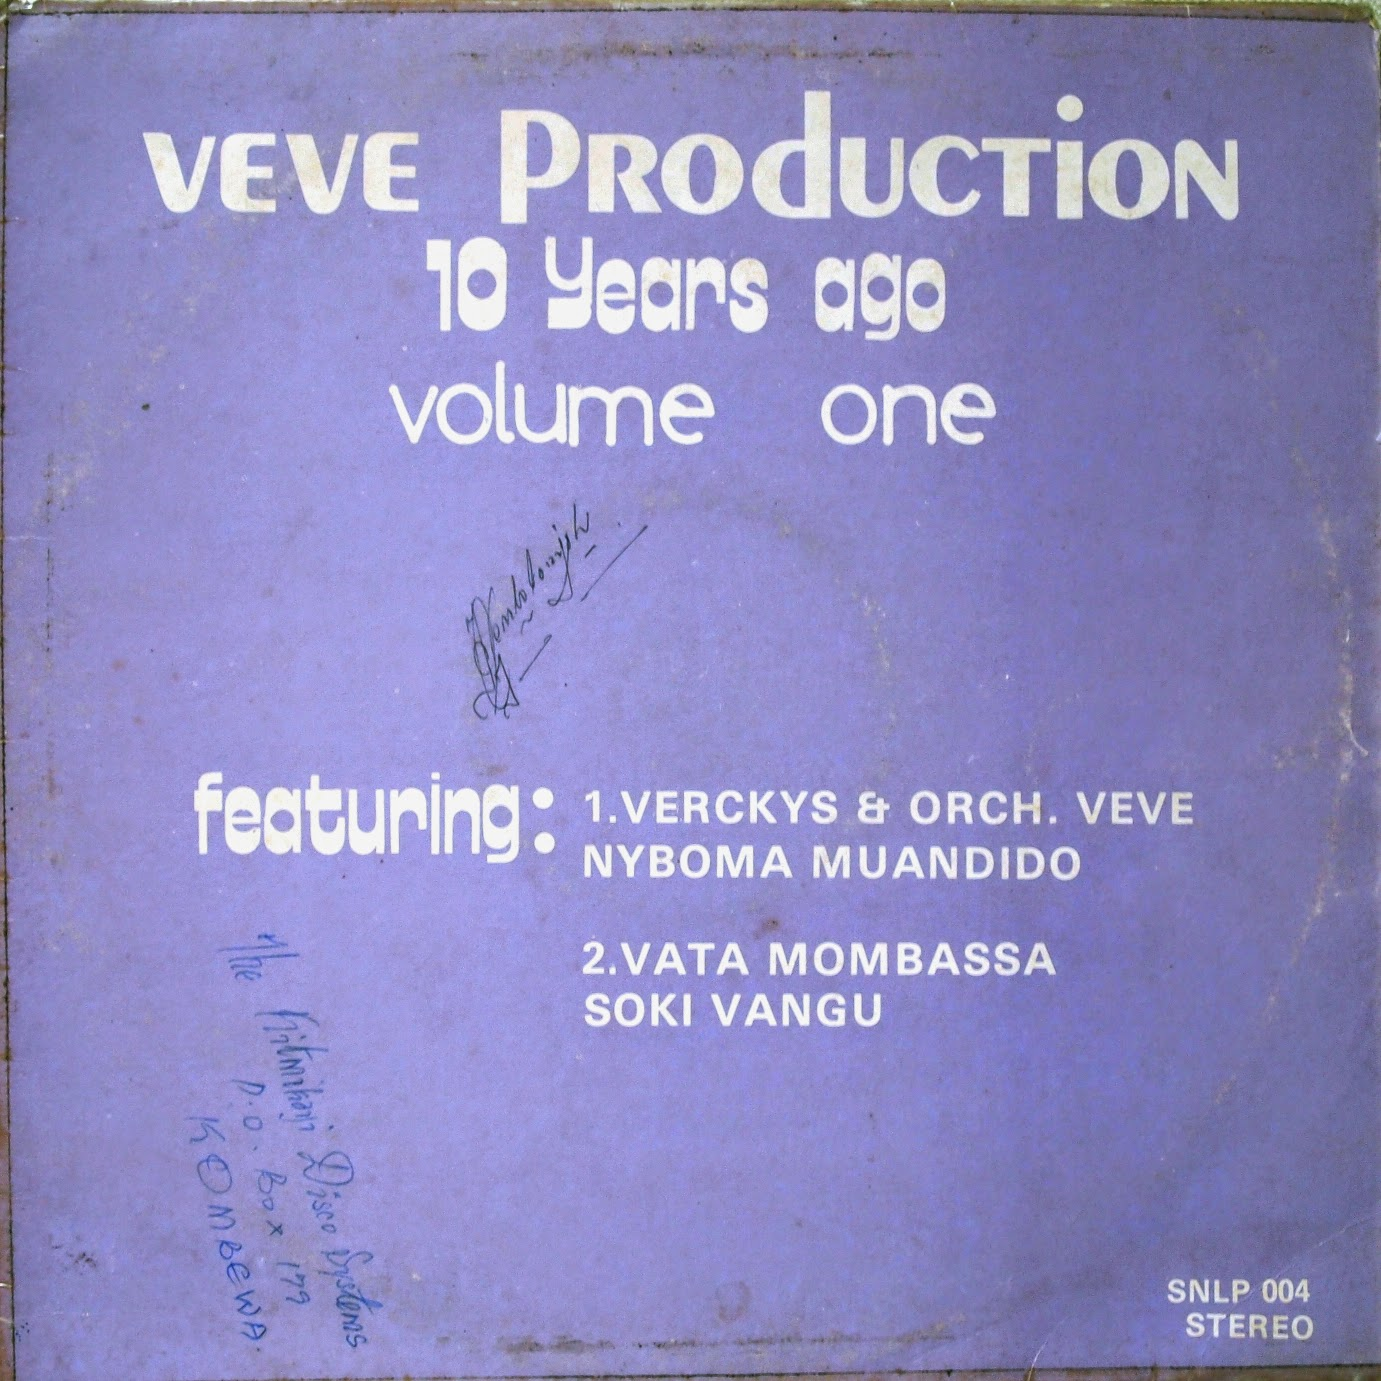 Veve Productions 10 Years Ago Volume 1